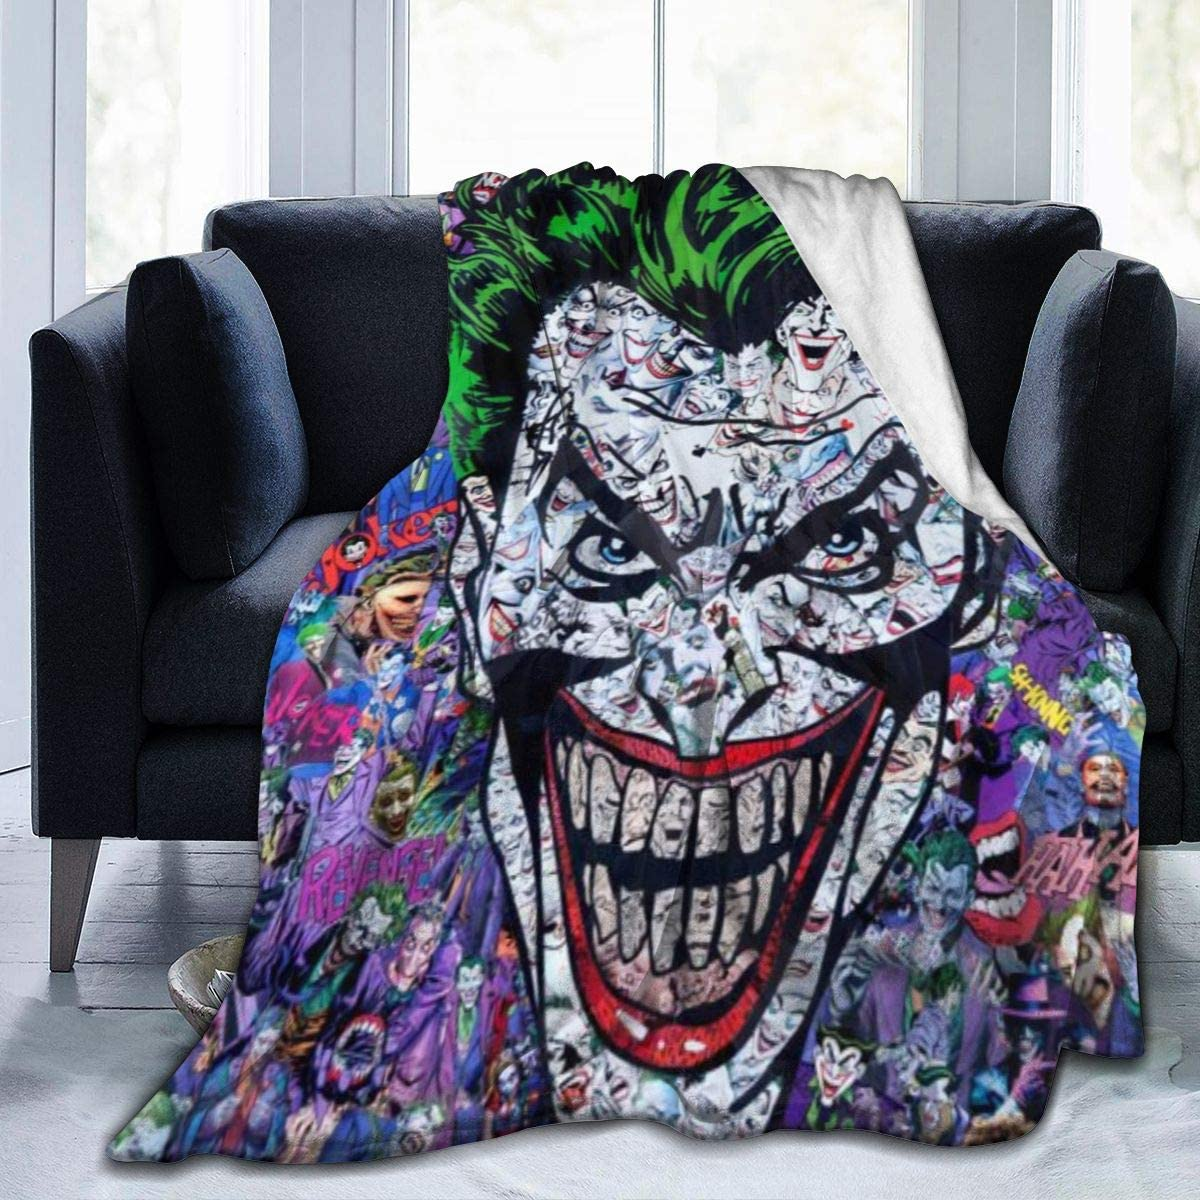 The Joker 3D Digita Print Throw Blanket Plush Sofa Bed Fleece Blanket Fans Gifts